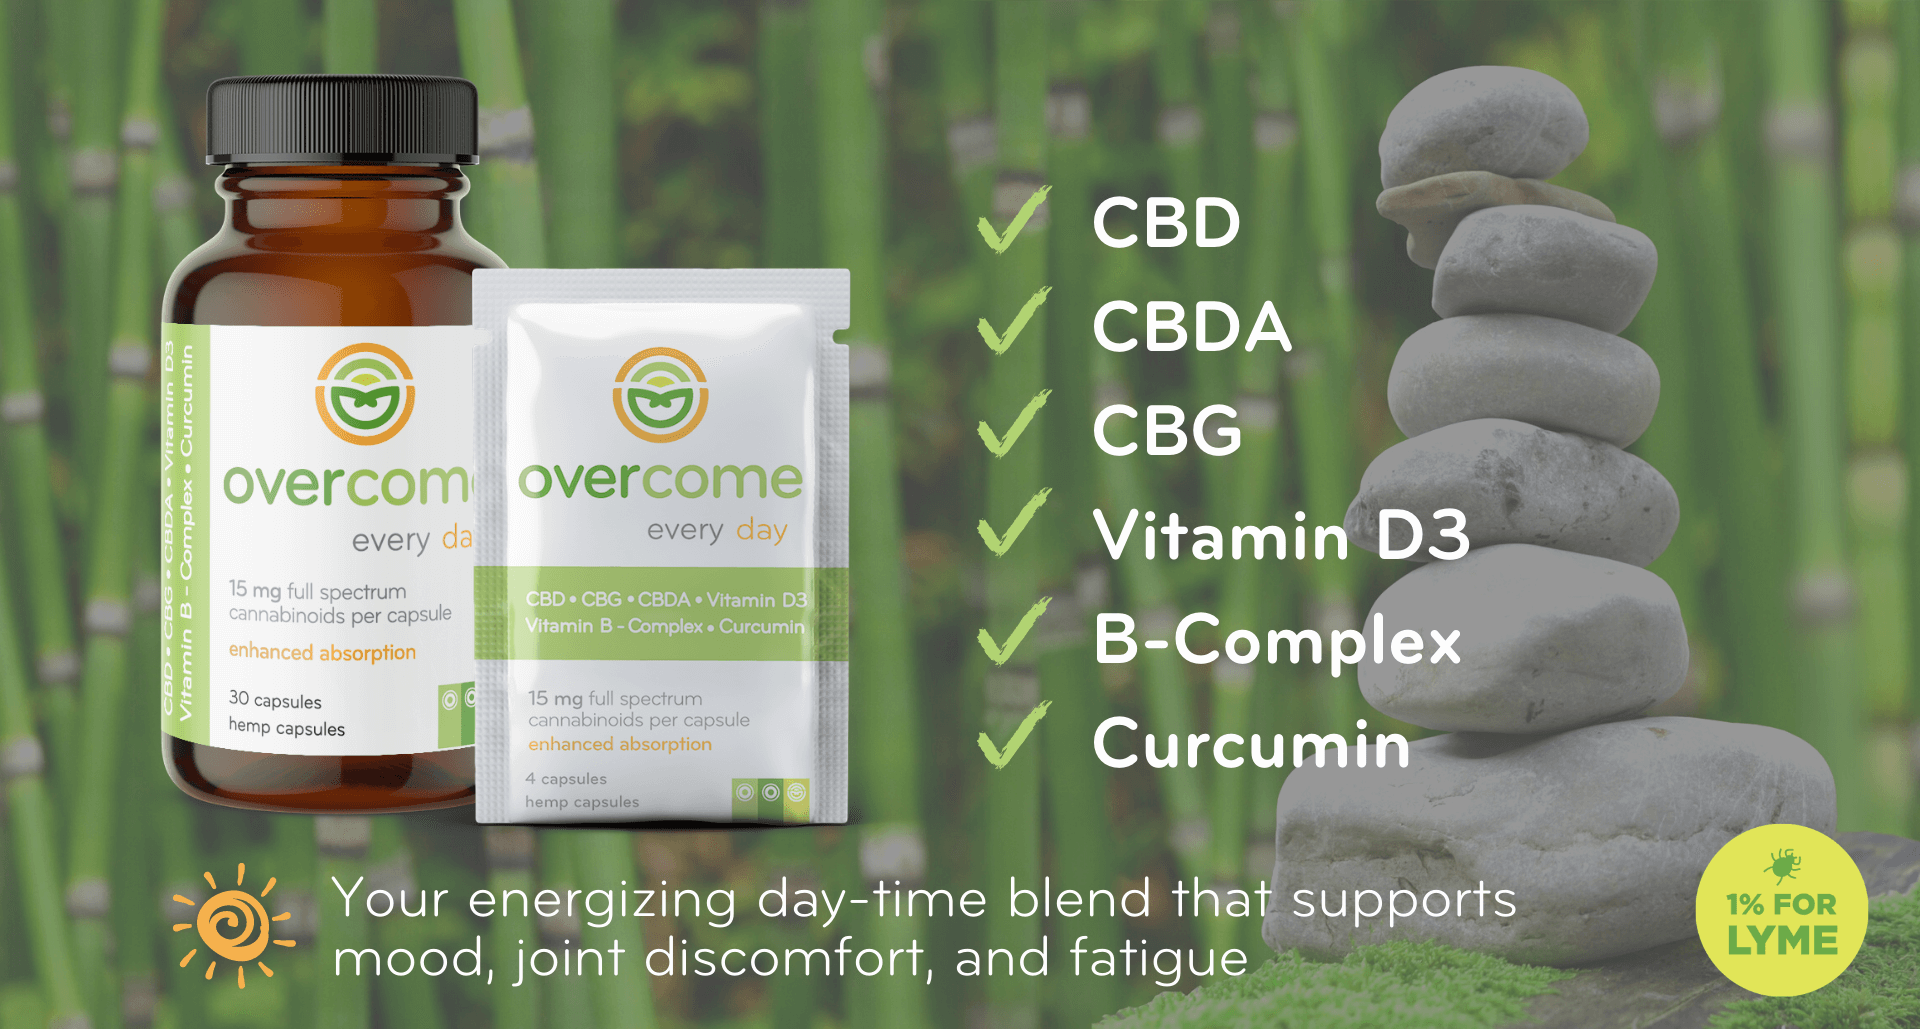 overcome-everyday-cbd-daytime-capsules